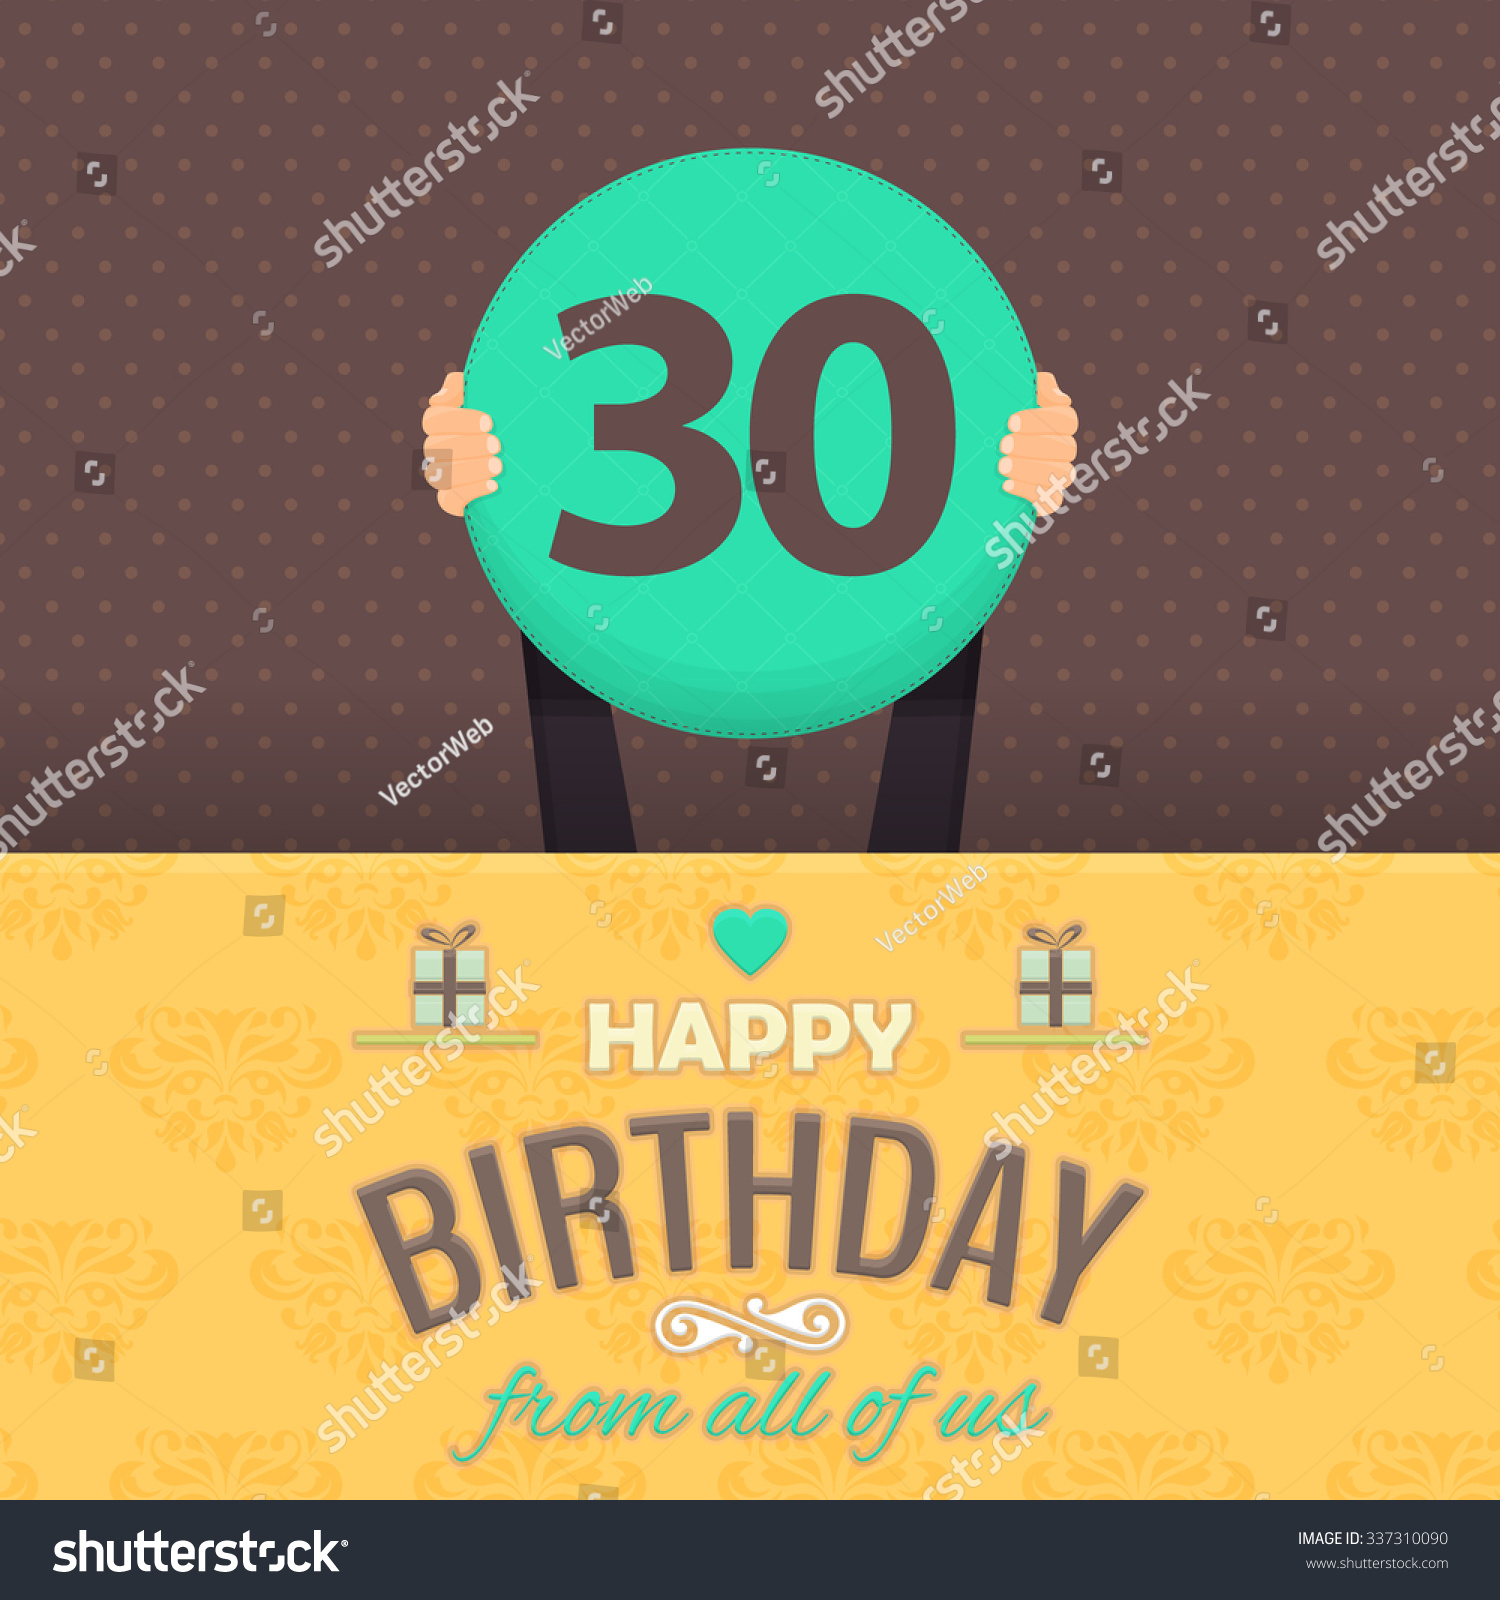 birthday colors for age 30 ; stock-vector-retro-colors-happy-birthday-vector-design-announcement-and-celebration-message-poster-flyer-flat-337310090